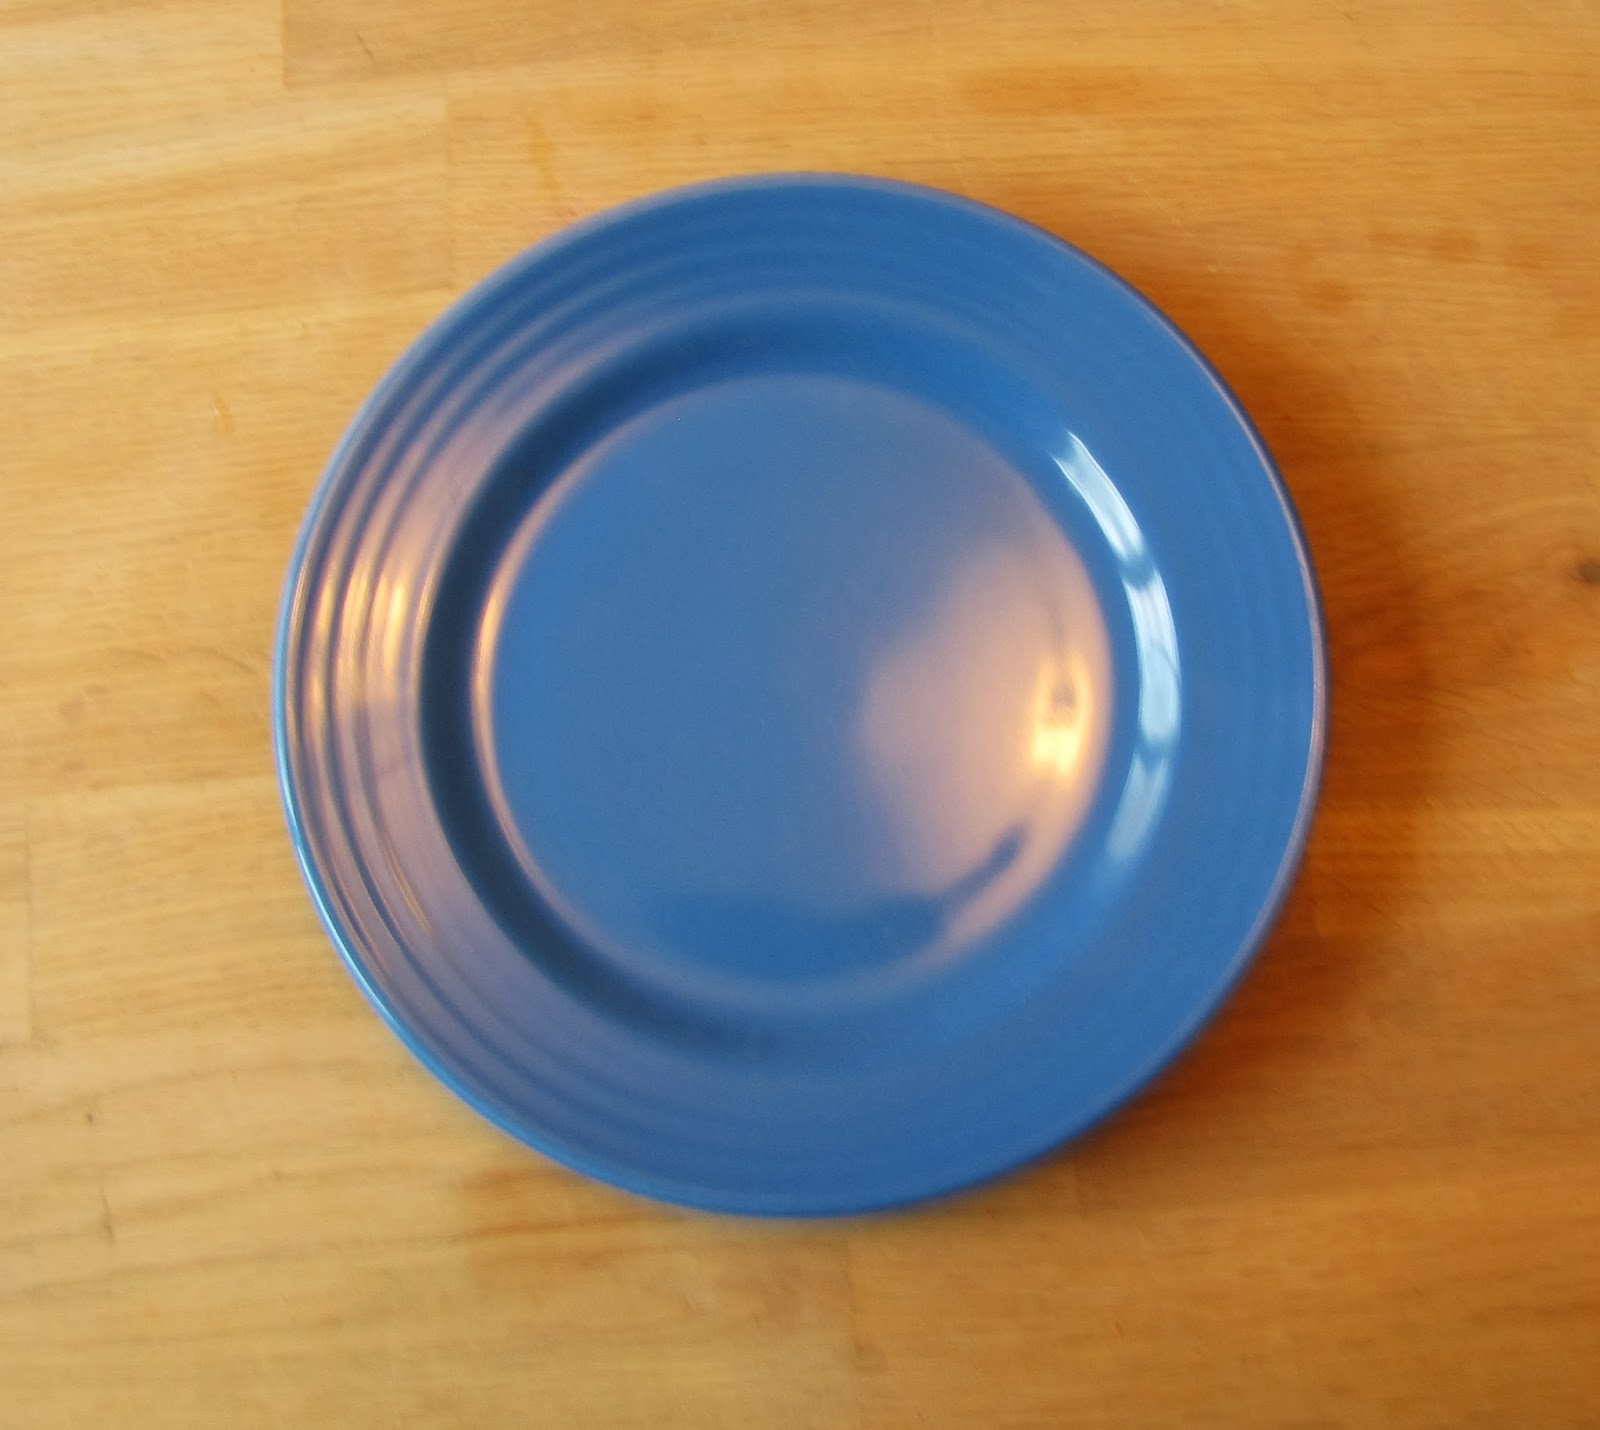 Some slightly stained melamine jobbies that I think were sitting in my parent\u0027s garage for 20 years under mouse droppings and crumply newspaper ... & HOW TO BE A DOMESTIC DISGRACE: China Snobbery